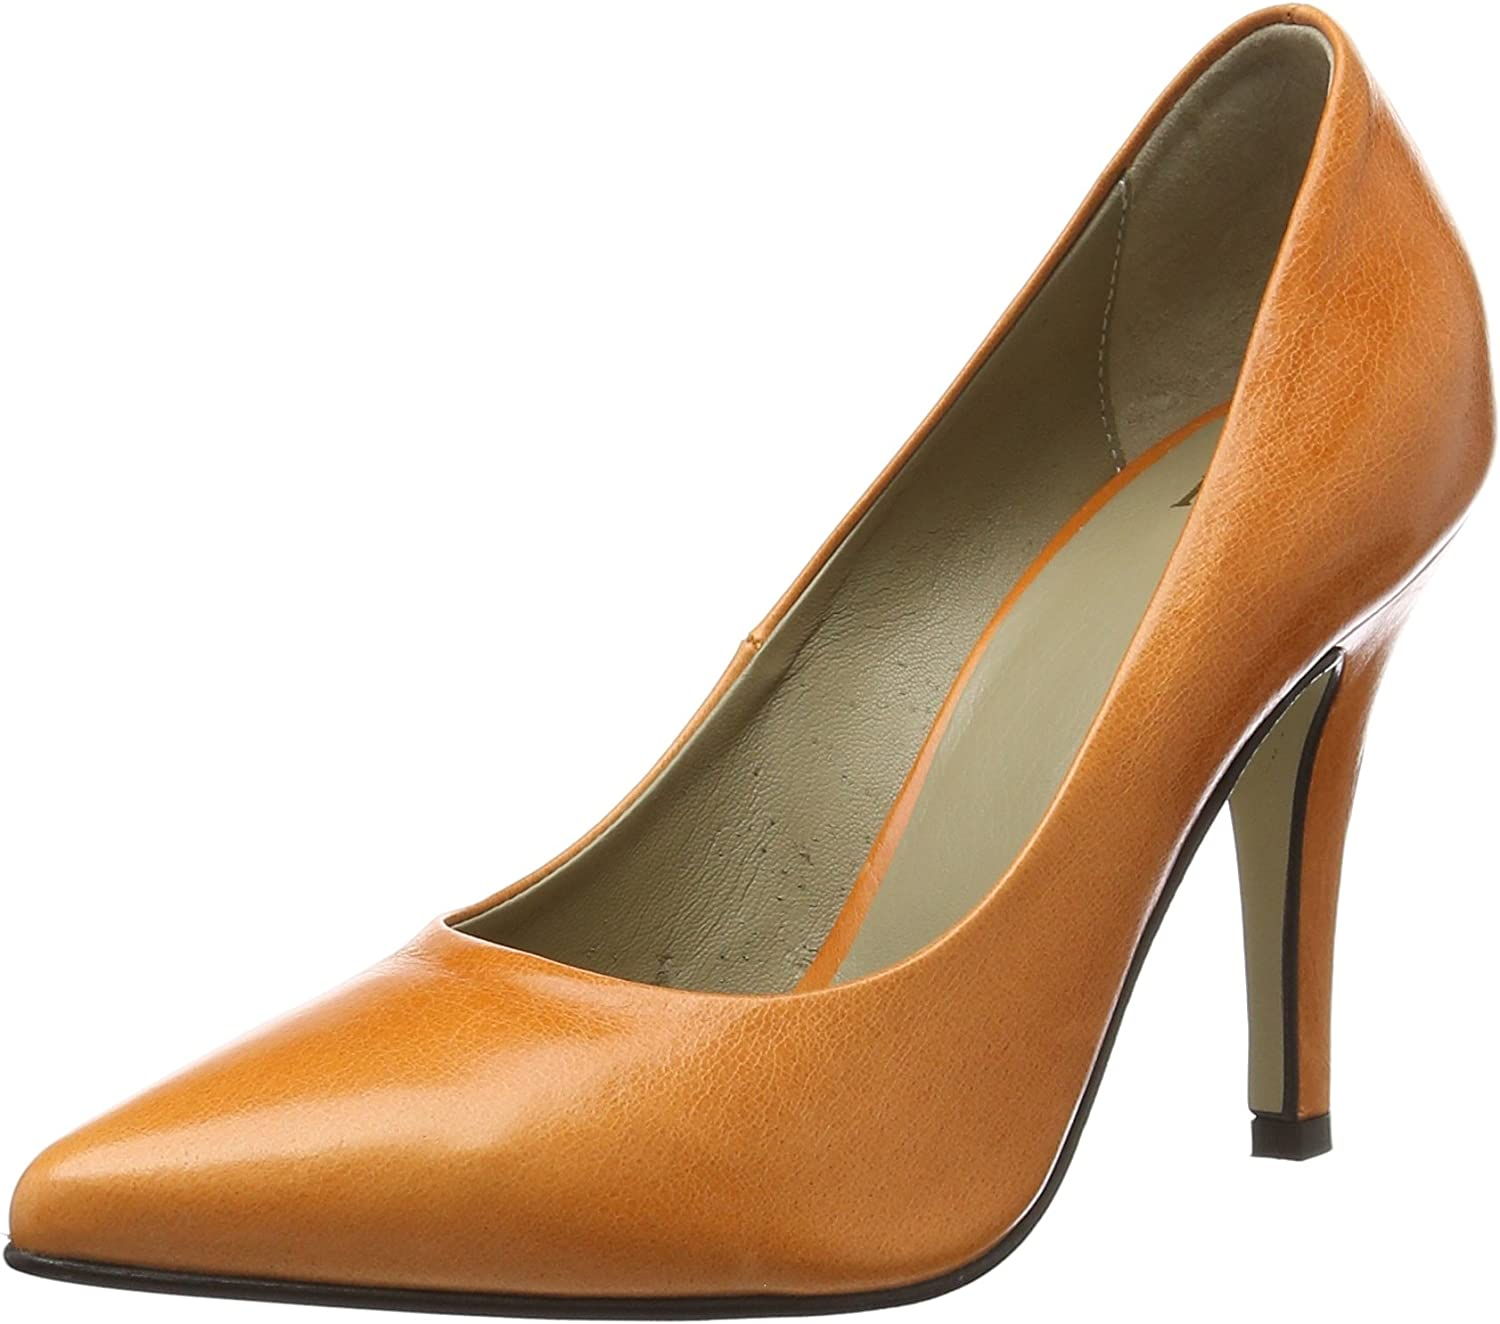 Heerkens Productions BV Nicole Pump - Zapatos Mujer